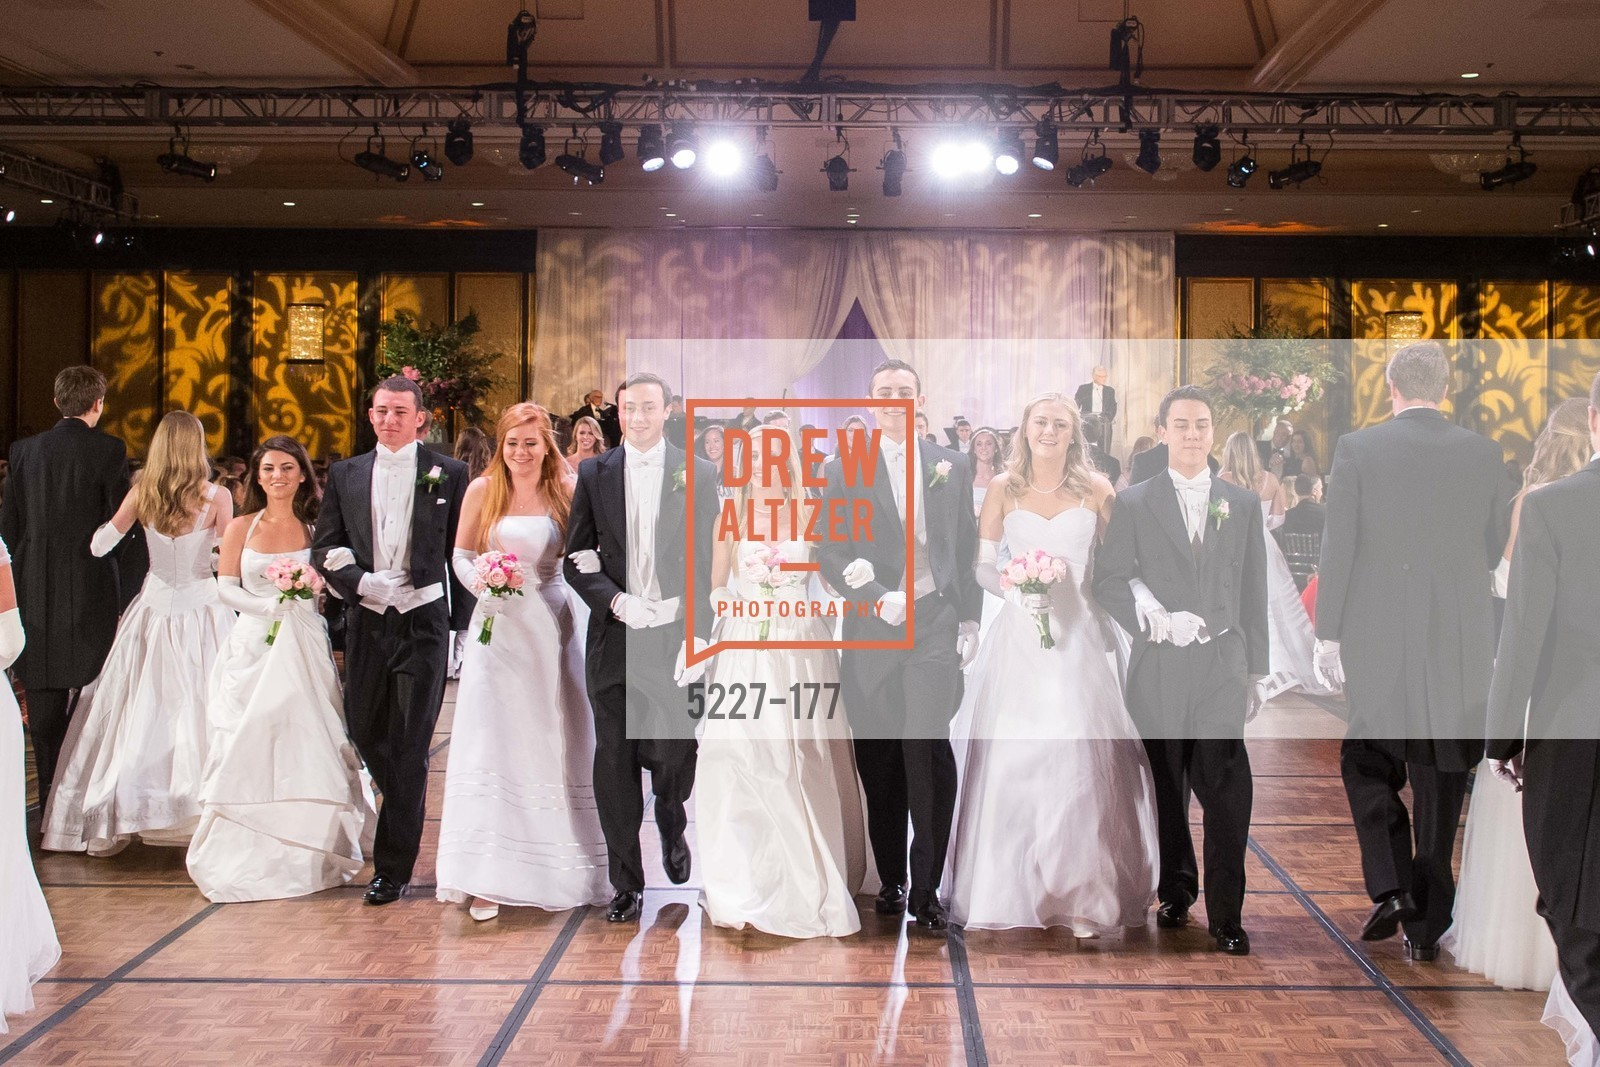 Paige Alexandra Silverman, Parker Wyatt Silverman, Camille Anne Rich, Kevin Michael Mannix II, Jennifer Suzanne Reynolds, Maxwell Tucker Brenner, Sara Reeves Scannell, Kai Otto Fukami Vogel, The 2015 San Francisco Debutante Ball, The Westin St. Francis San Francisco Union Square. 335 Powell St, June 20th, 2015,Drew Altizer, Drew Altizer Photography, full-service event agency, private events, San Francisco photographer, photographer California